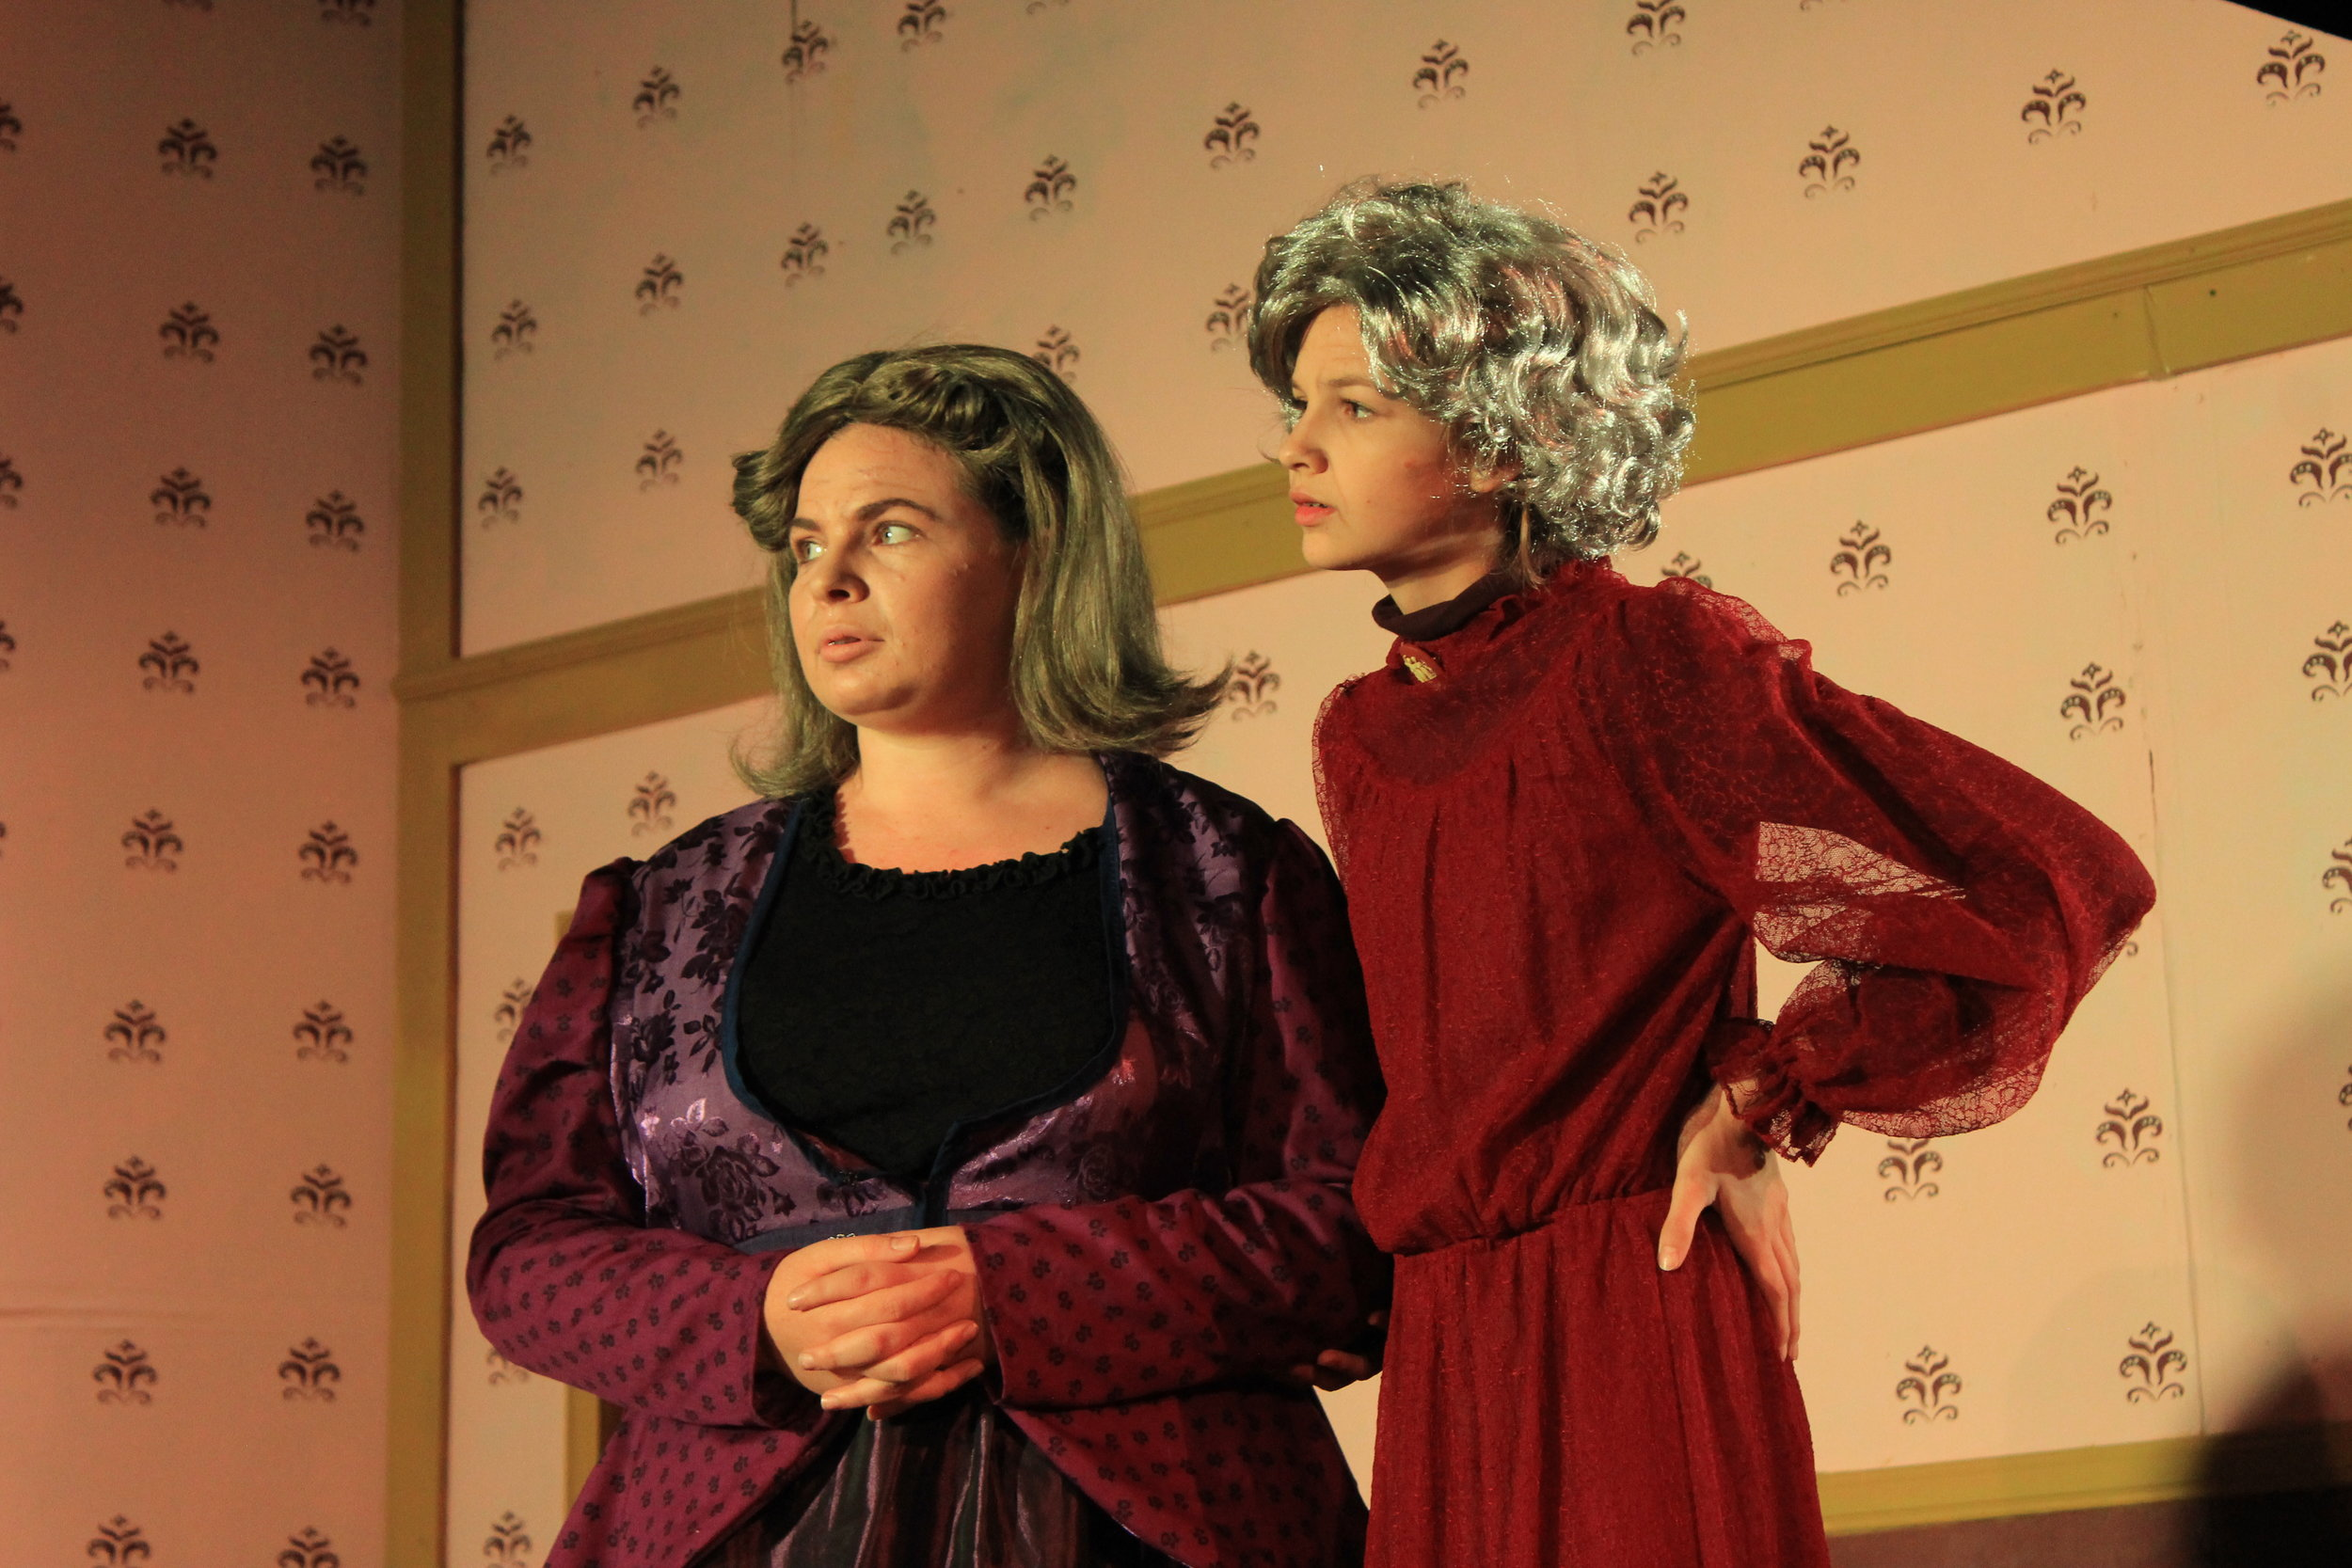 """The two 'batty' aunts in """"Arsenic and Old Lace"""" look on as their nephew rants about their insanity. (Fall 2017)"""